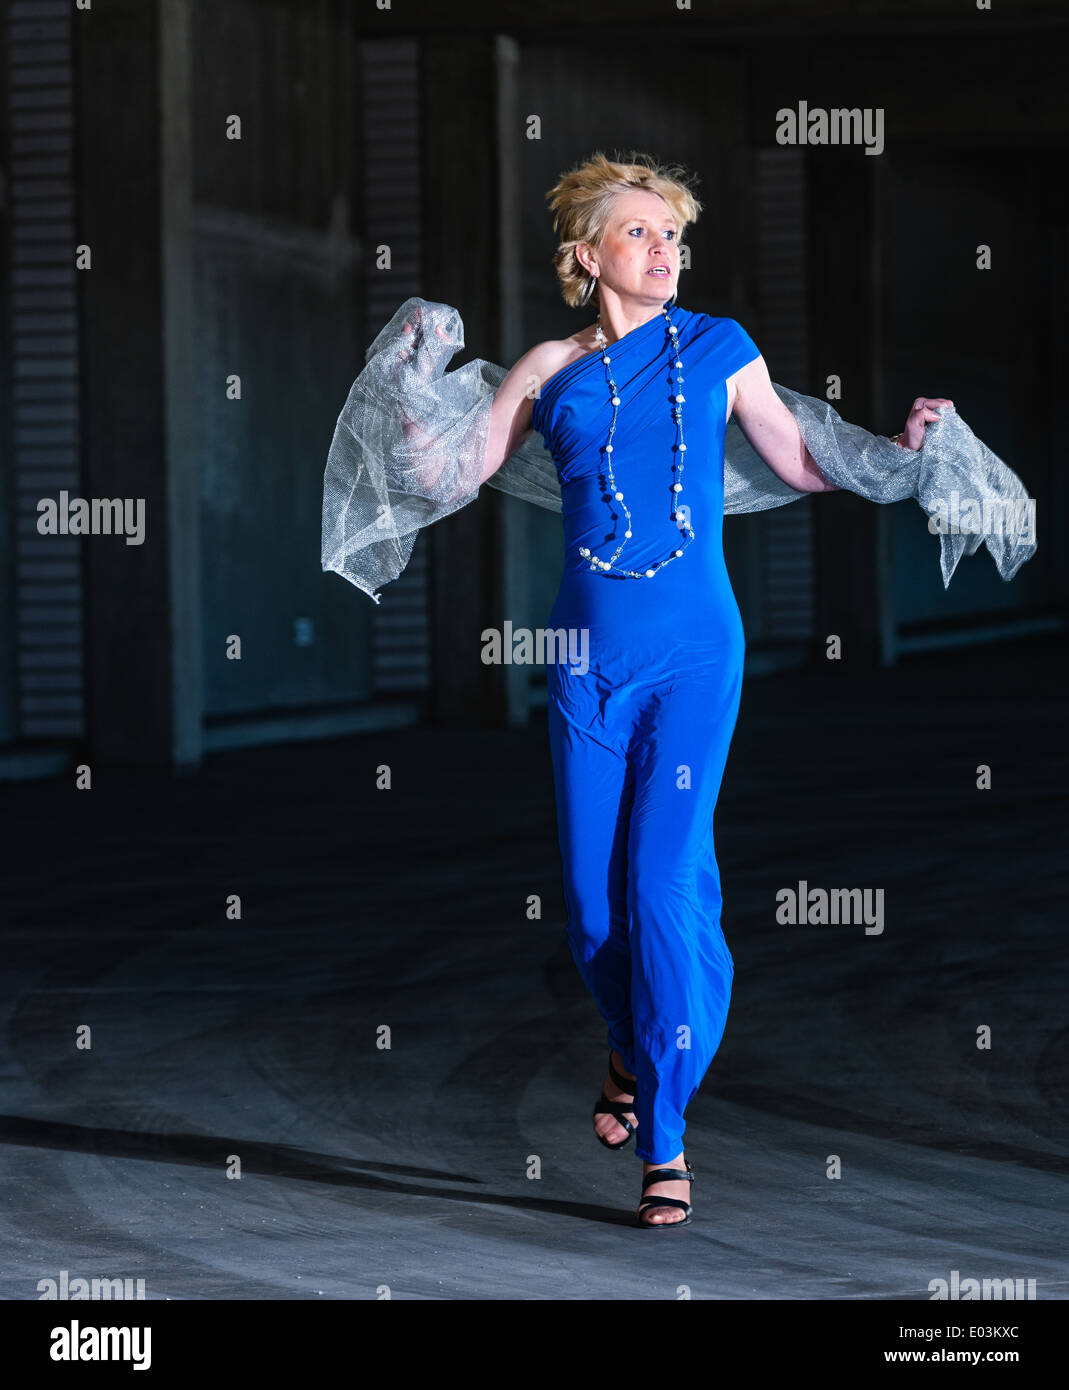 Frightened woman wearing blue dress and running in the public parking house - Stock Image